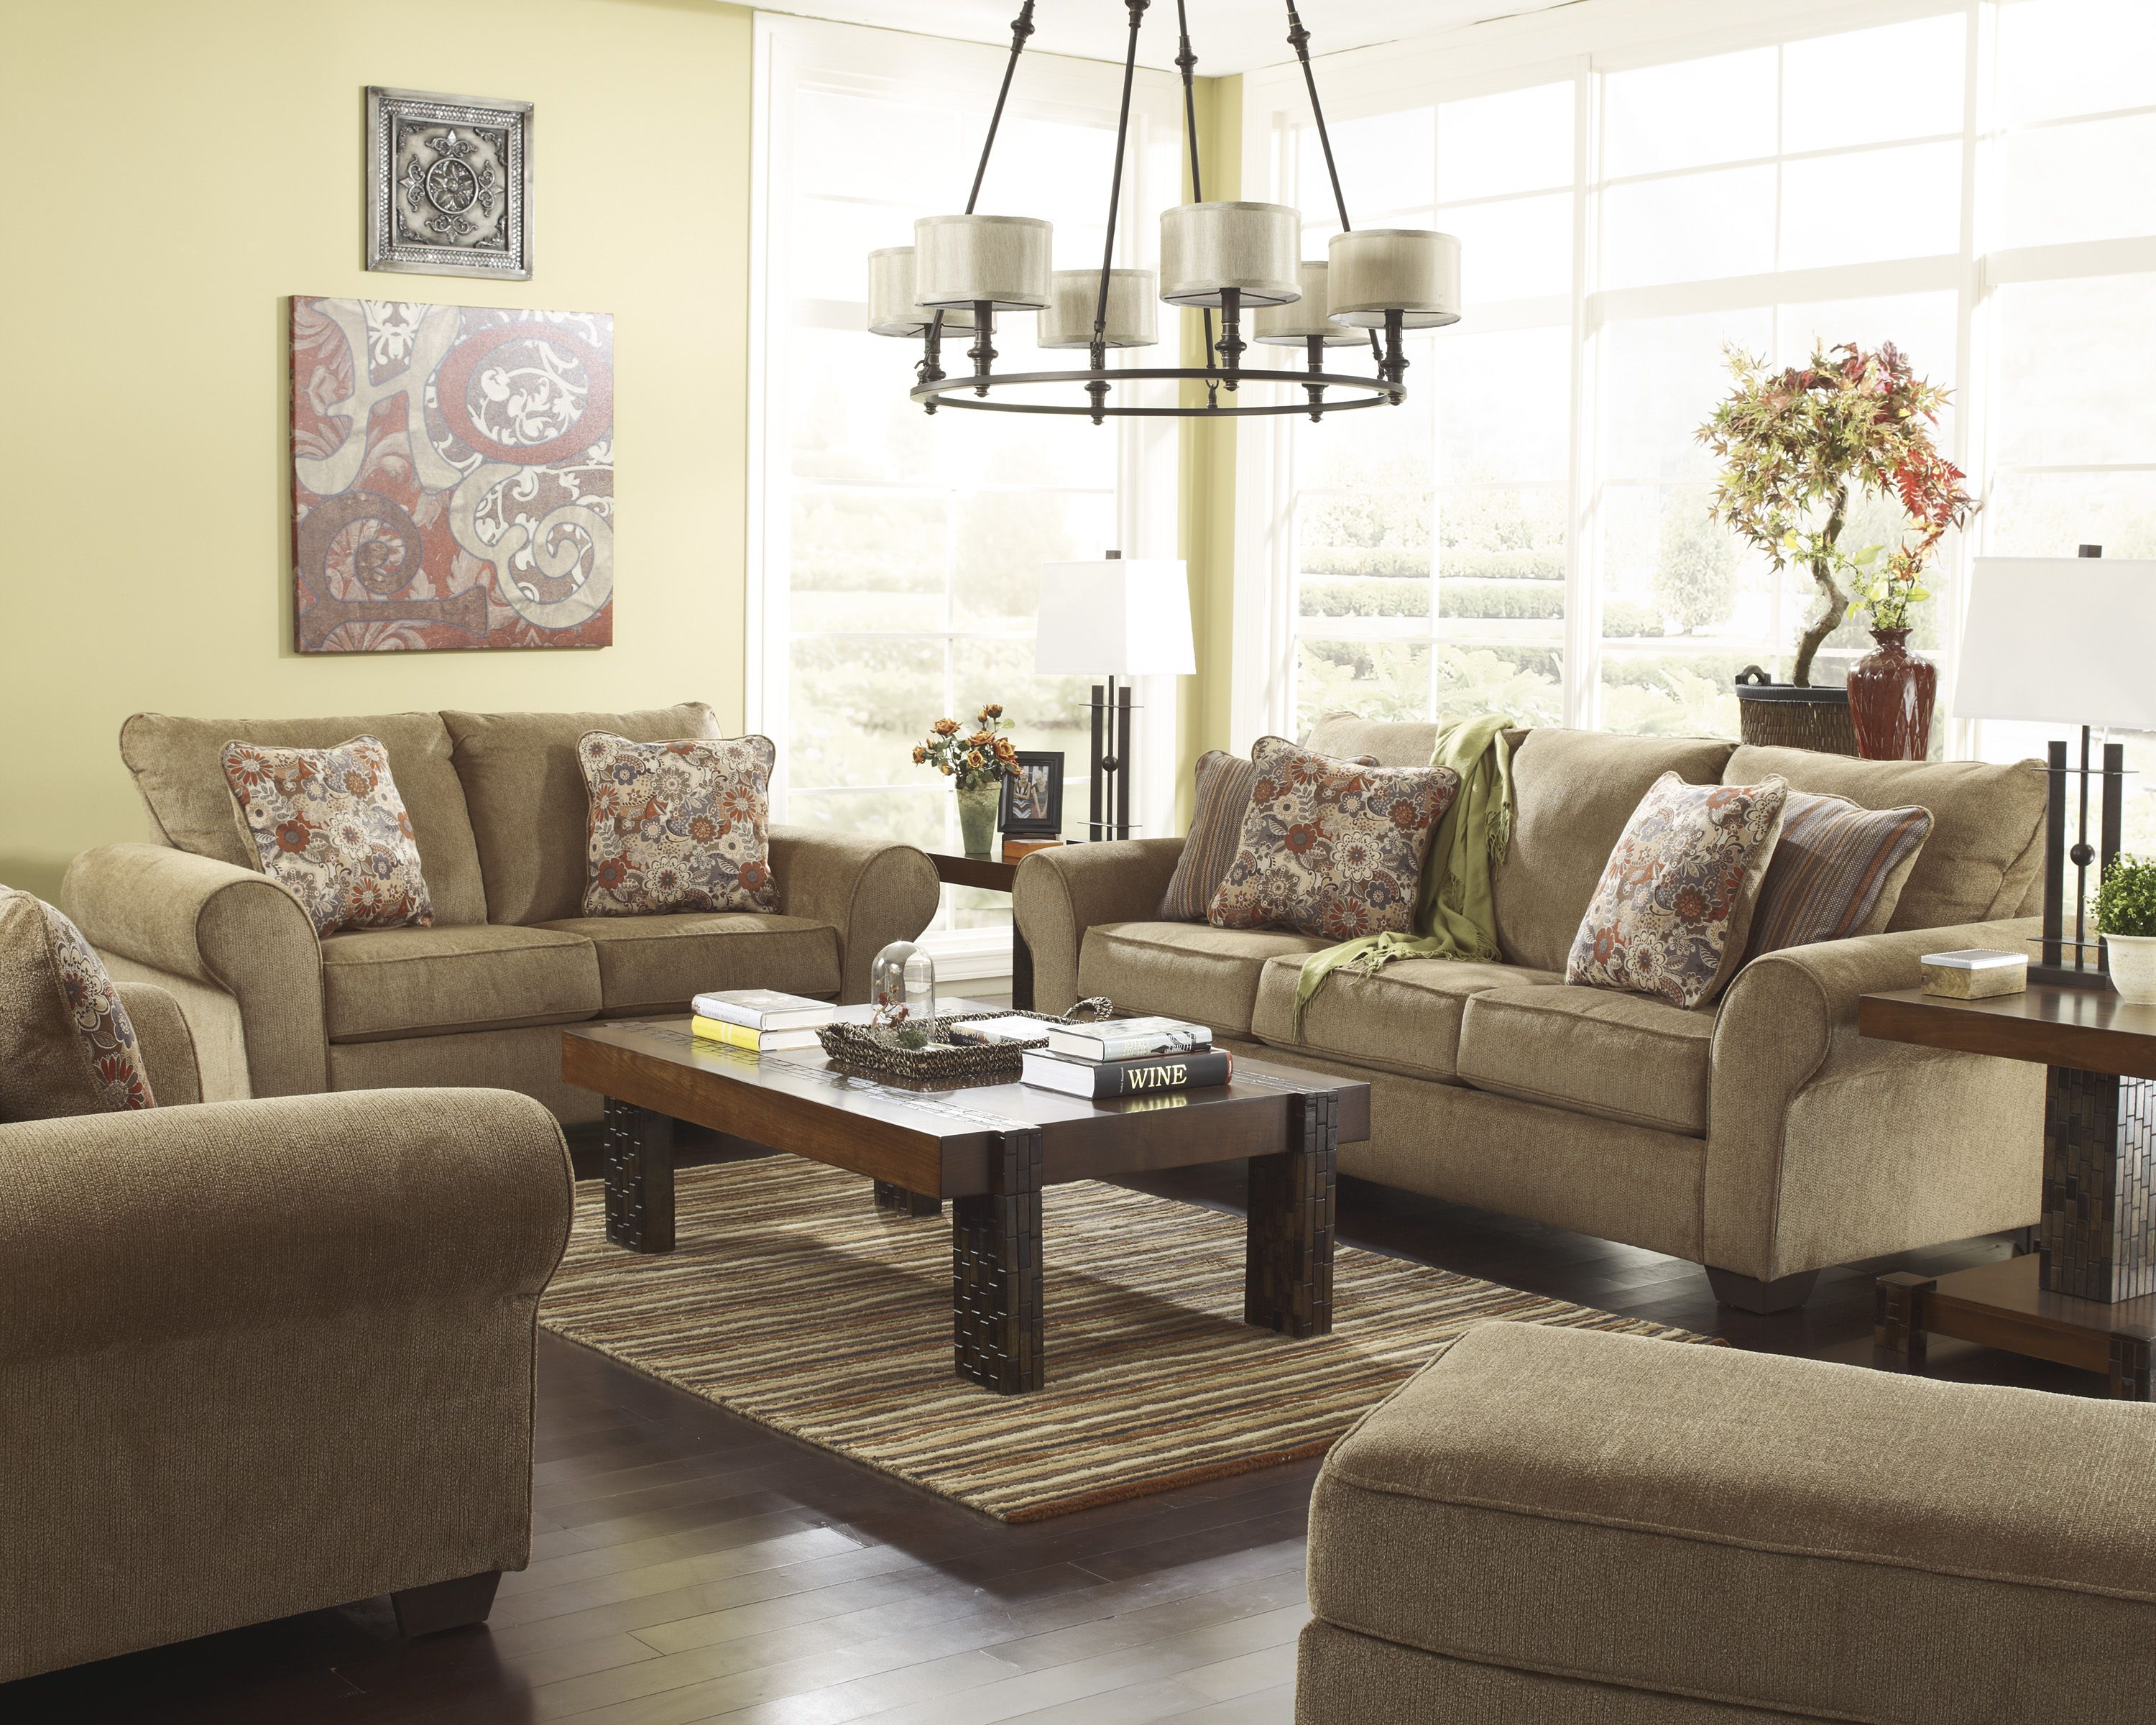 Exceptionnel Galand   Ashley Furniture HomeStore. I Hear It All The Timeu2014beige Is  Boring. I Have To Disagree.